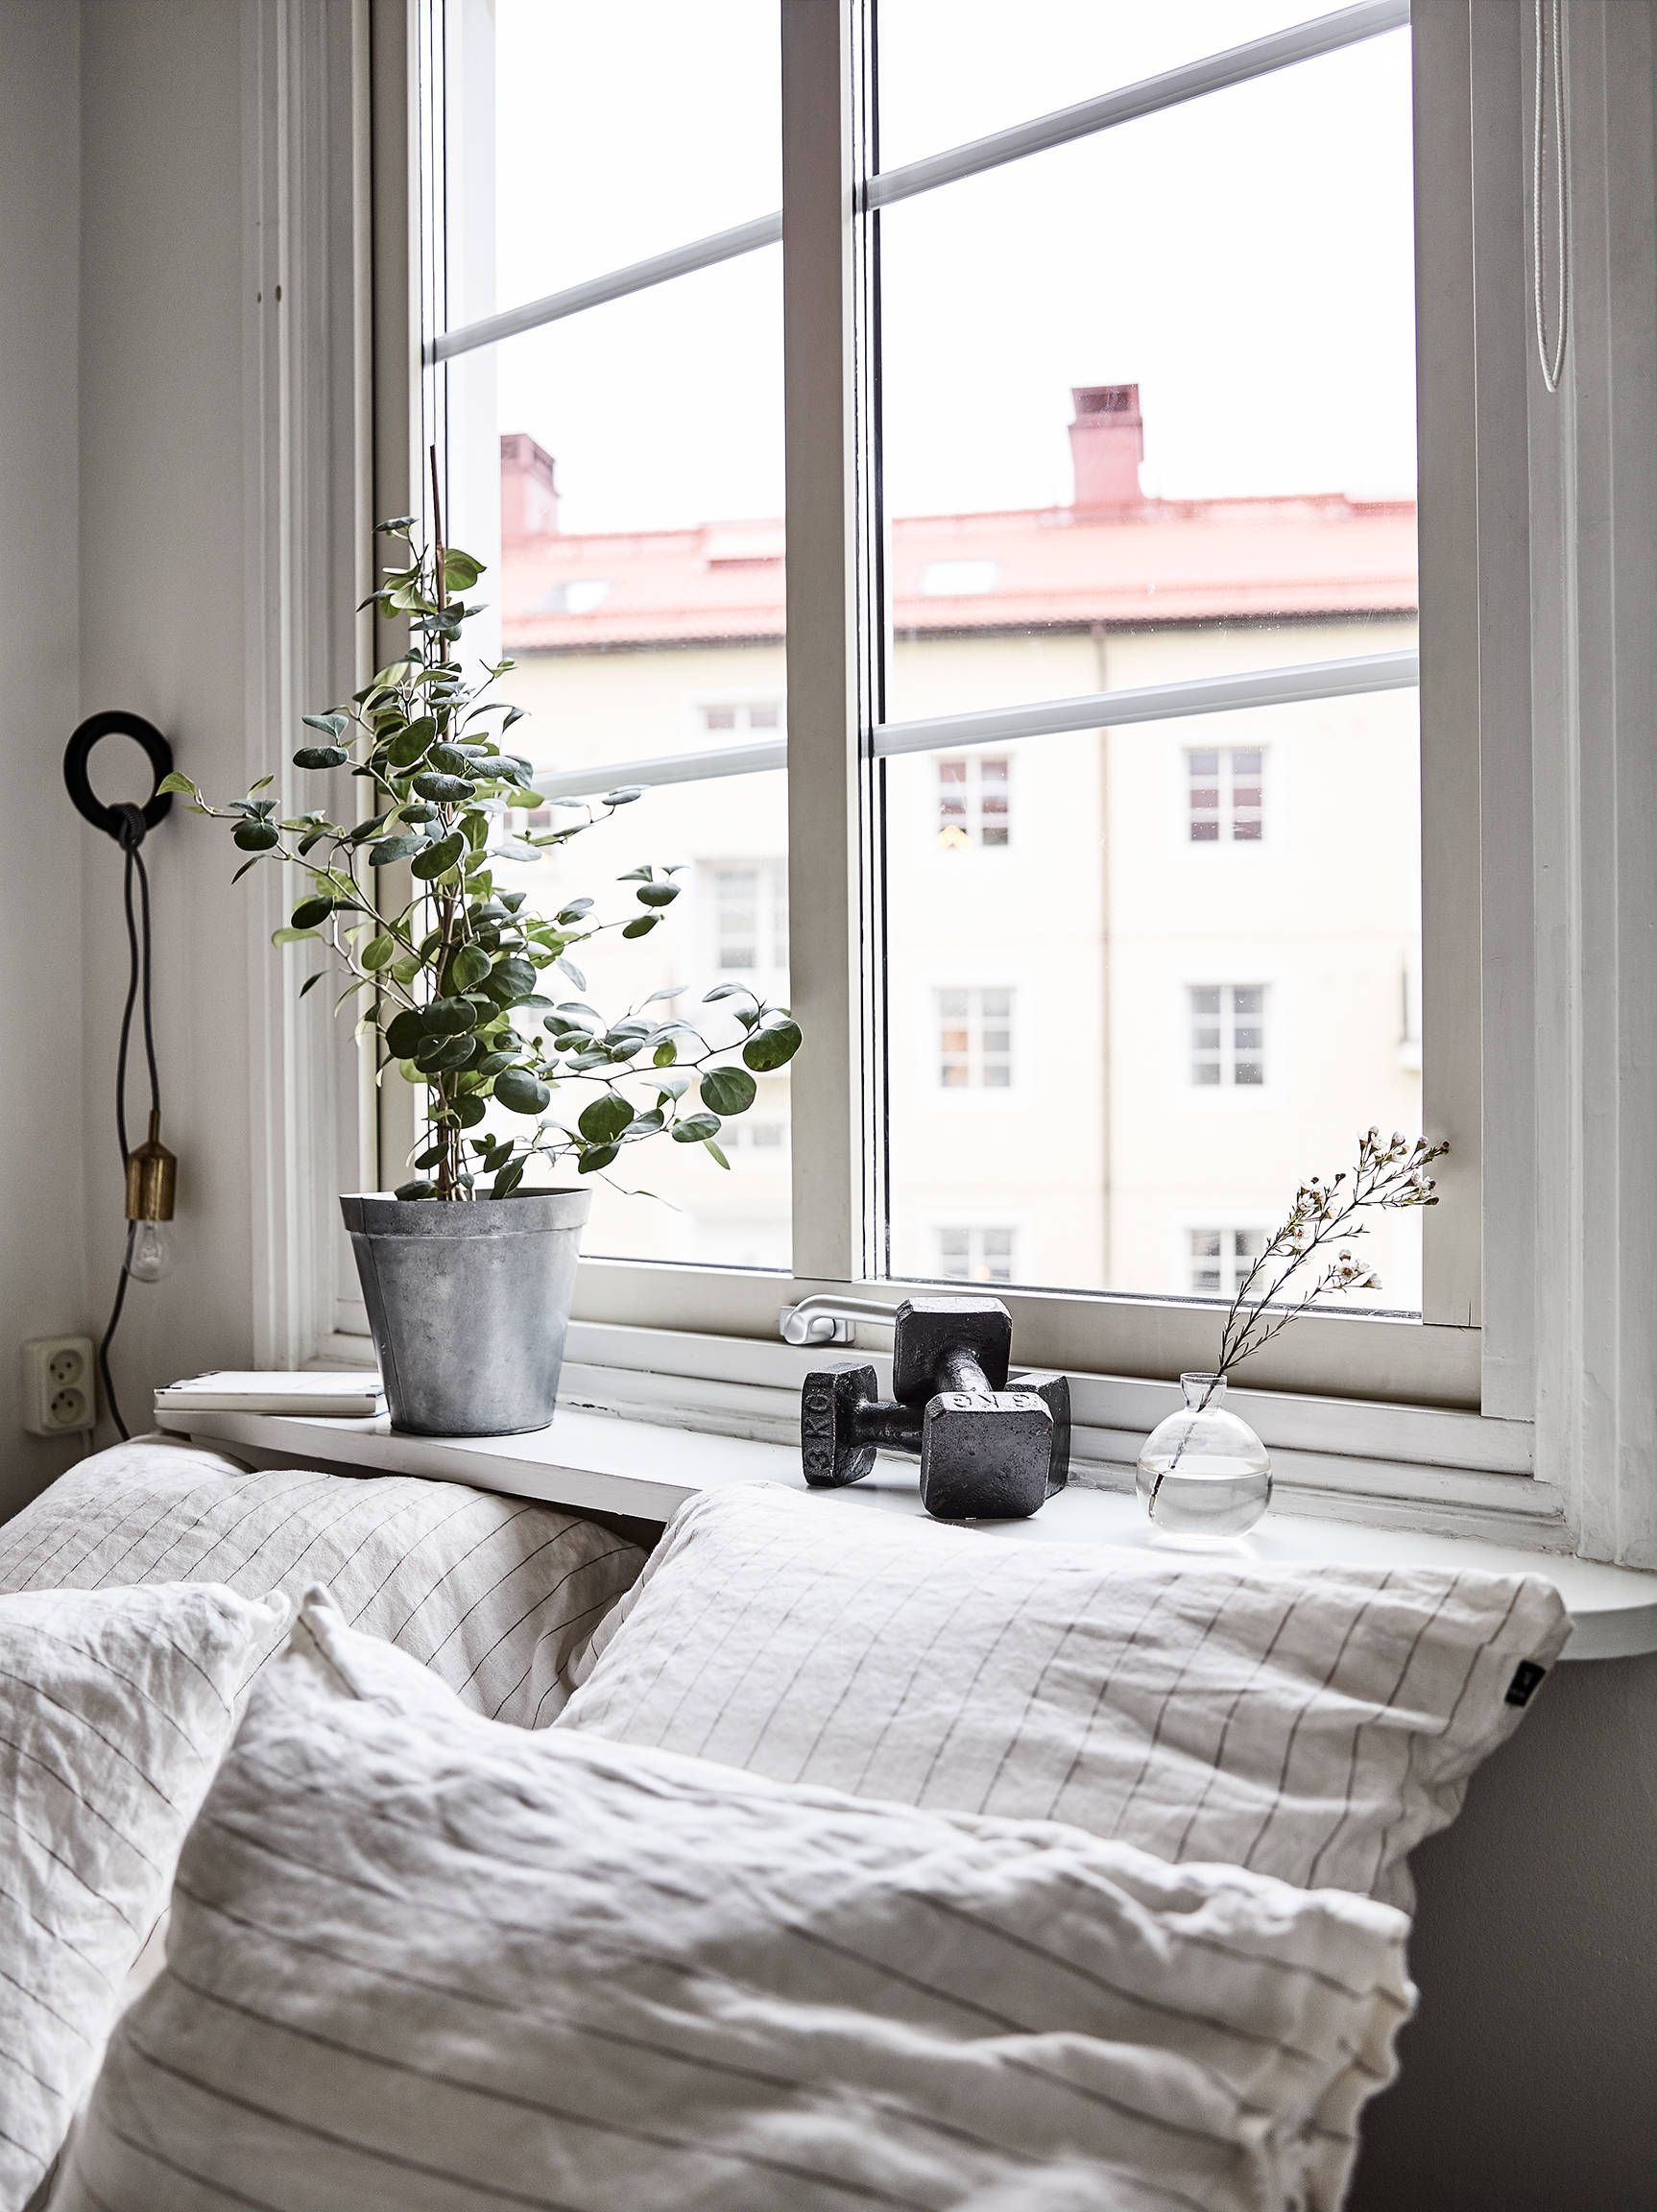 Pin By Ims On Room Ideas Schlafzimmer Schlafzimmer Buro